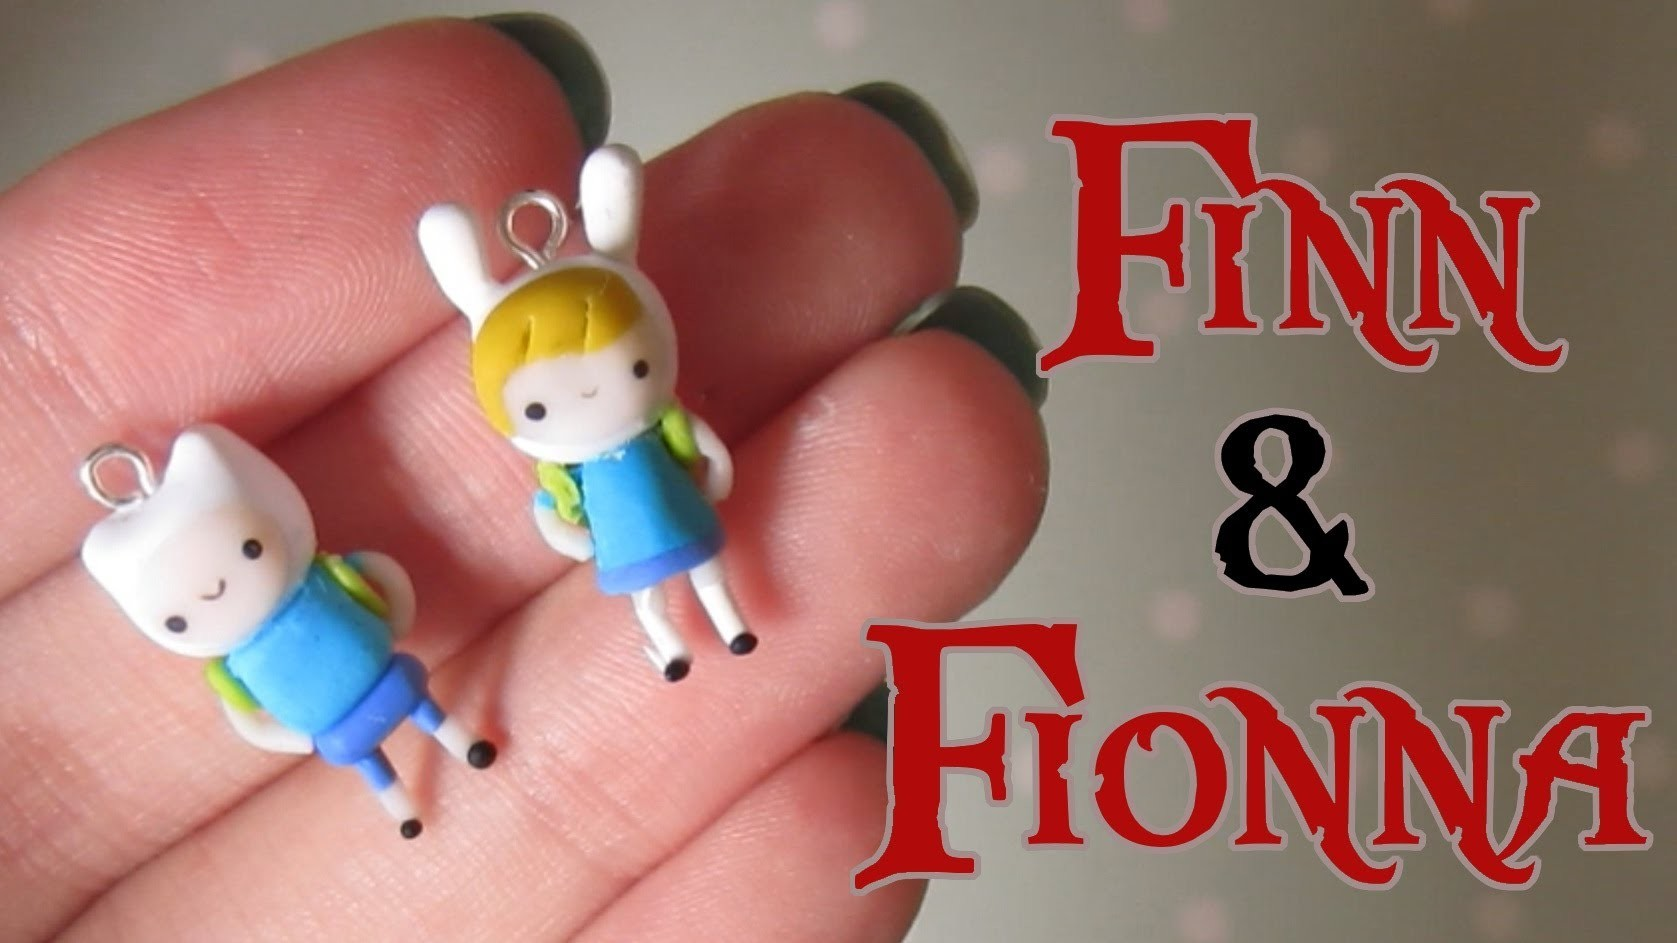 Finn & Fionna Tutorial From Adventure Time! Polymer Clay.